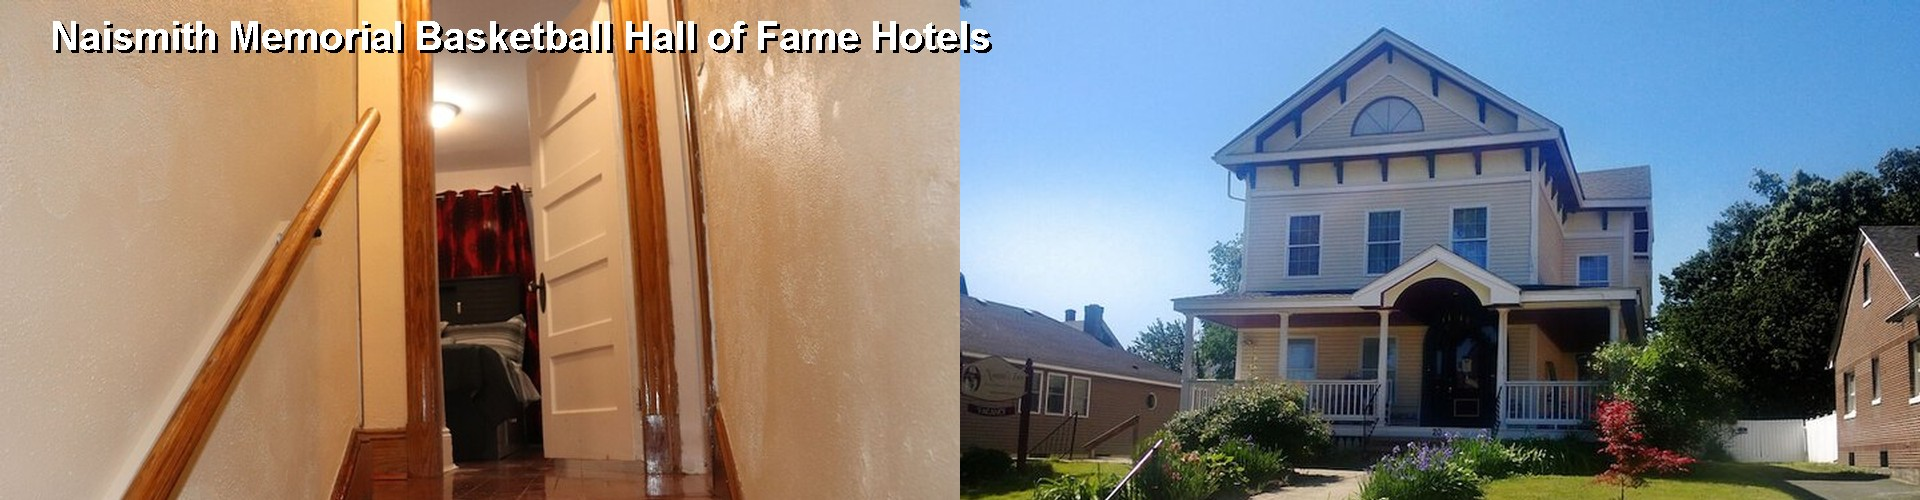 5 Best Hotels near Naismith Memorial Basketball Hall of Fame